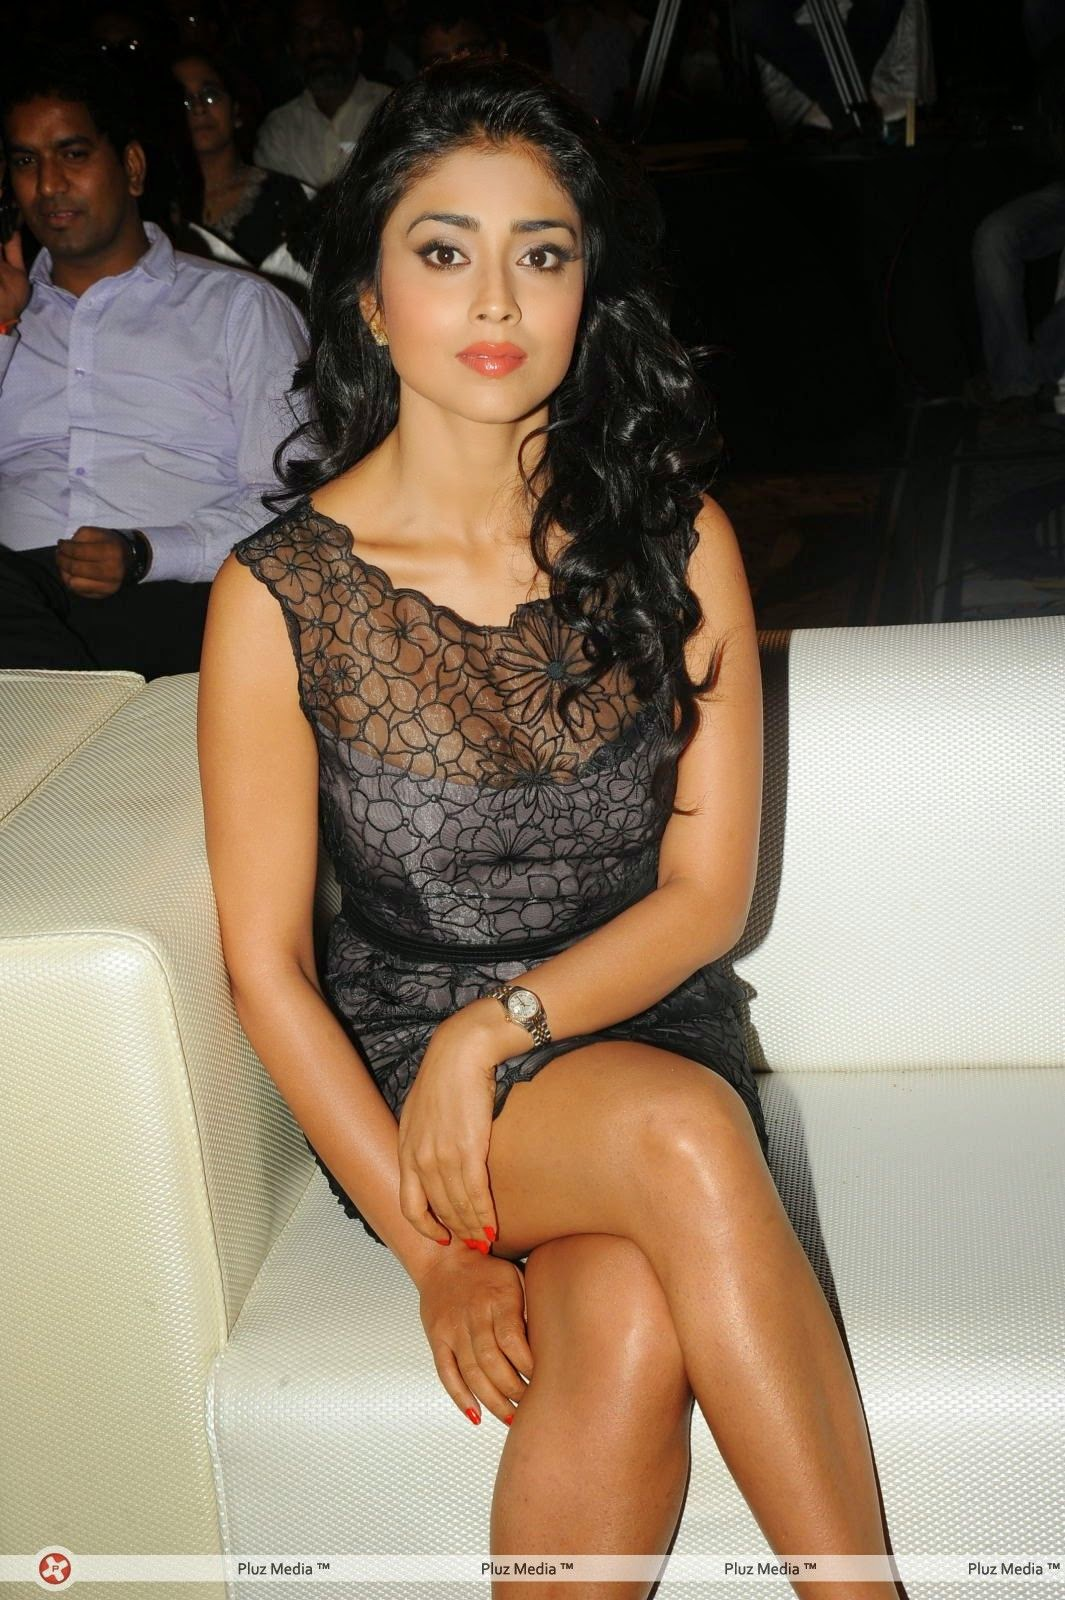 telugu actress crossed legs